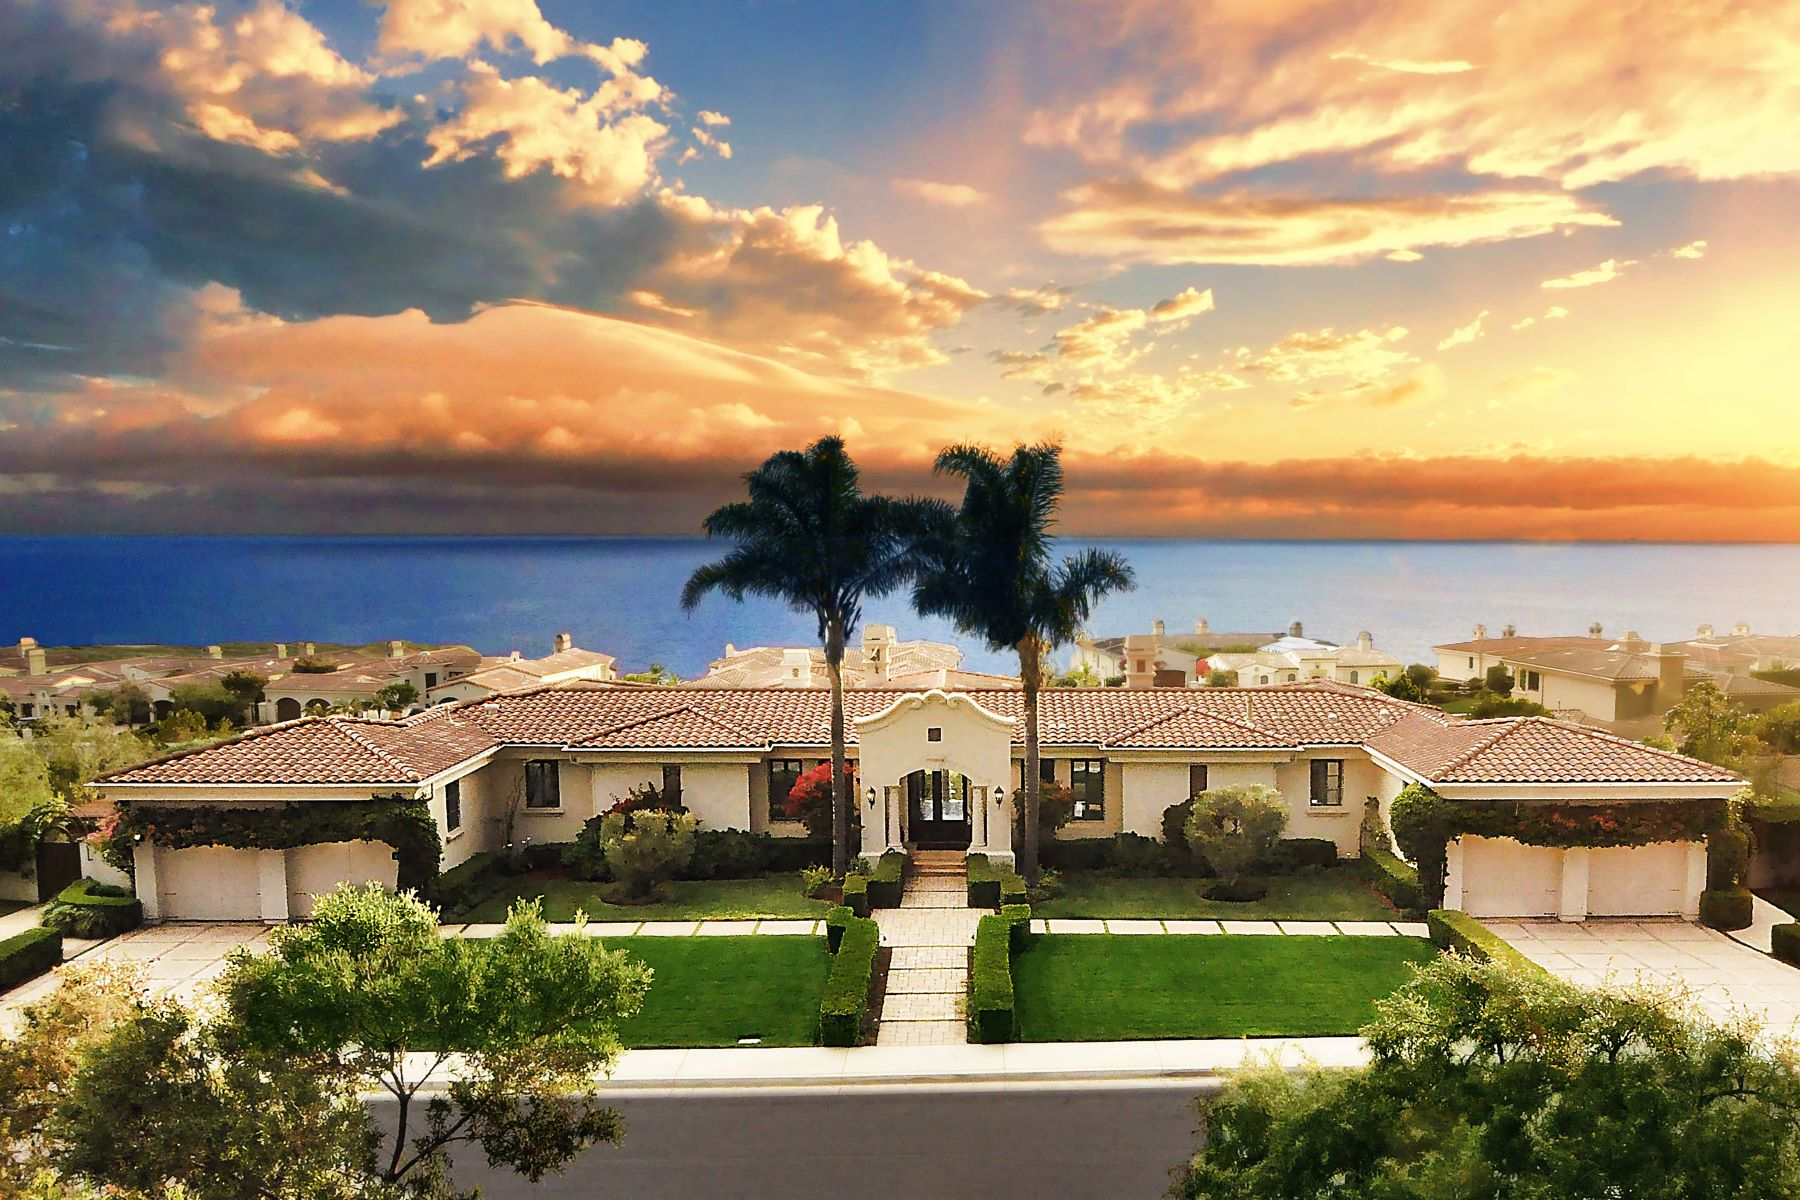 Single Family Homes for Sale at 63 Paseo Del La Luz, Rancho Palos Verdes, CA 90275 63 Paseo Del La Luz Rancho Palos Verdes, California 90275 United States